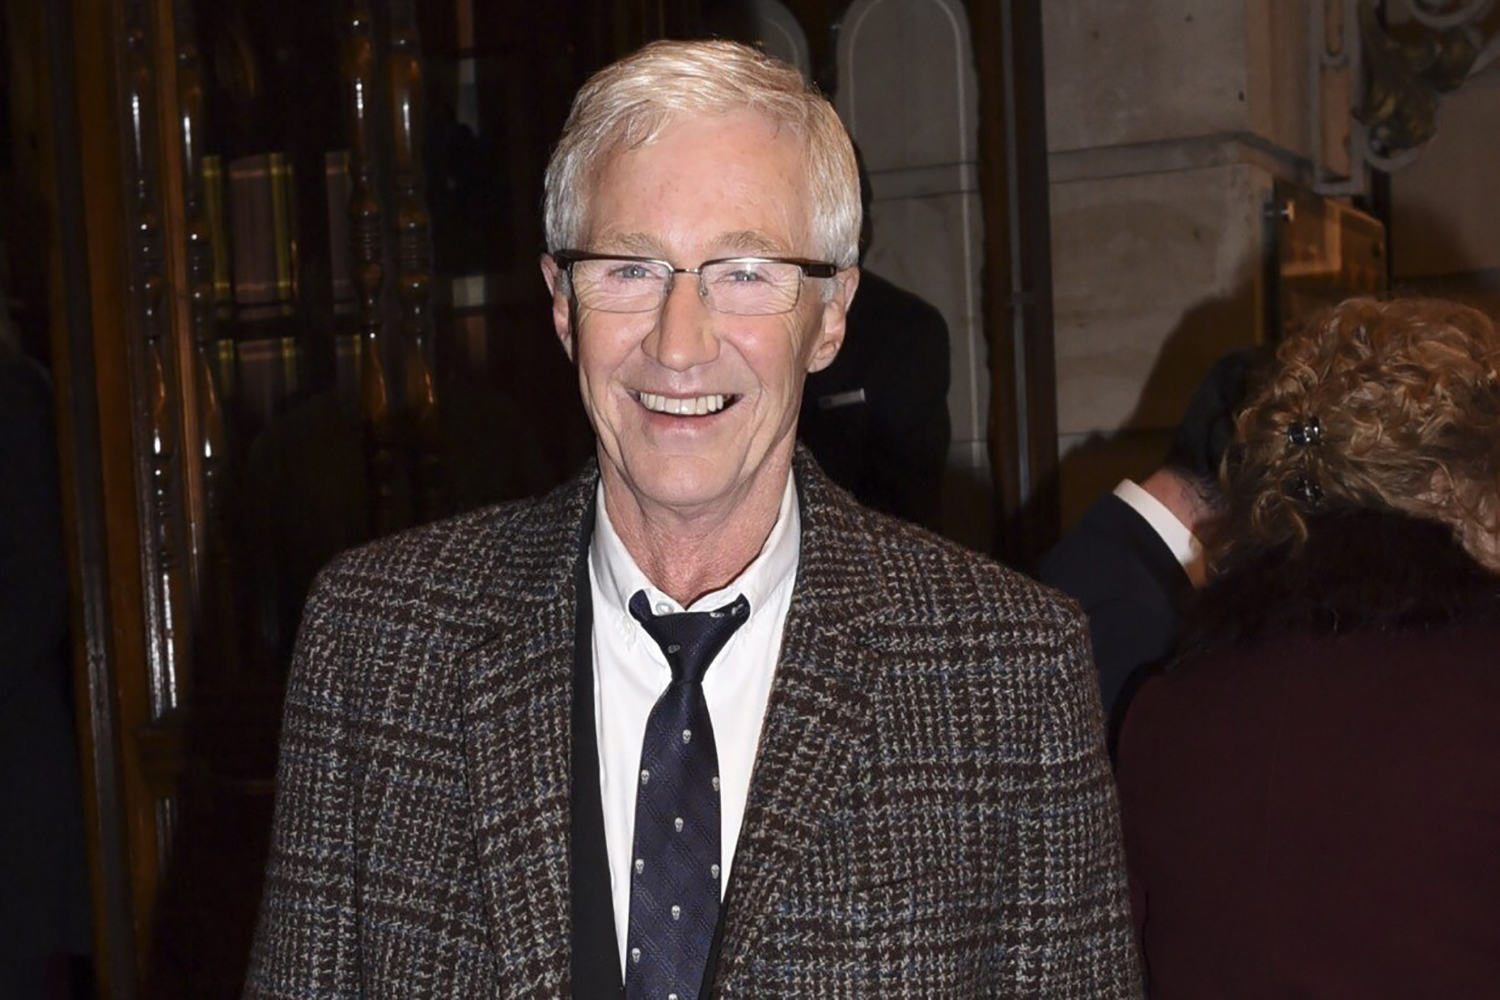 How well do you know For the Love of Dogs host Paul O'Grady? Take our quiz!